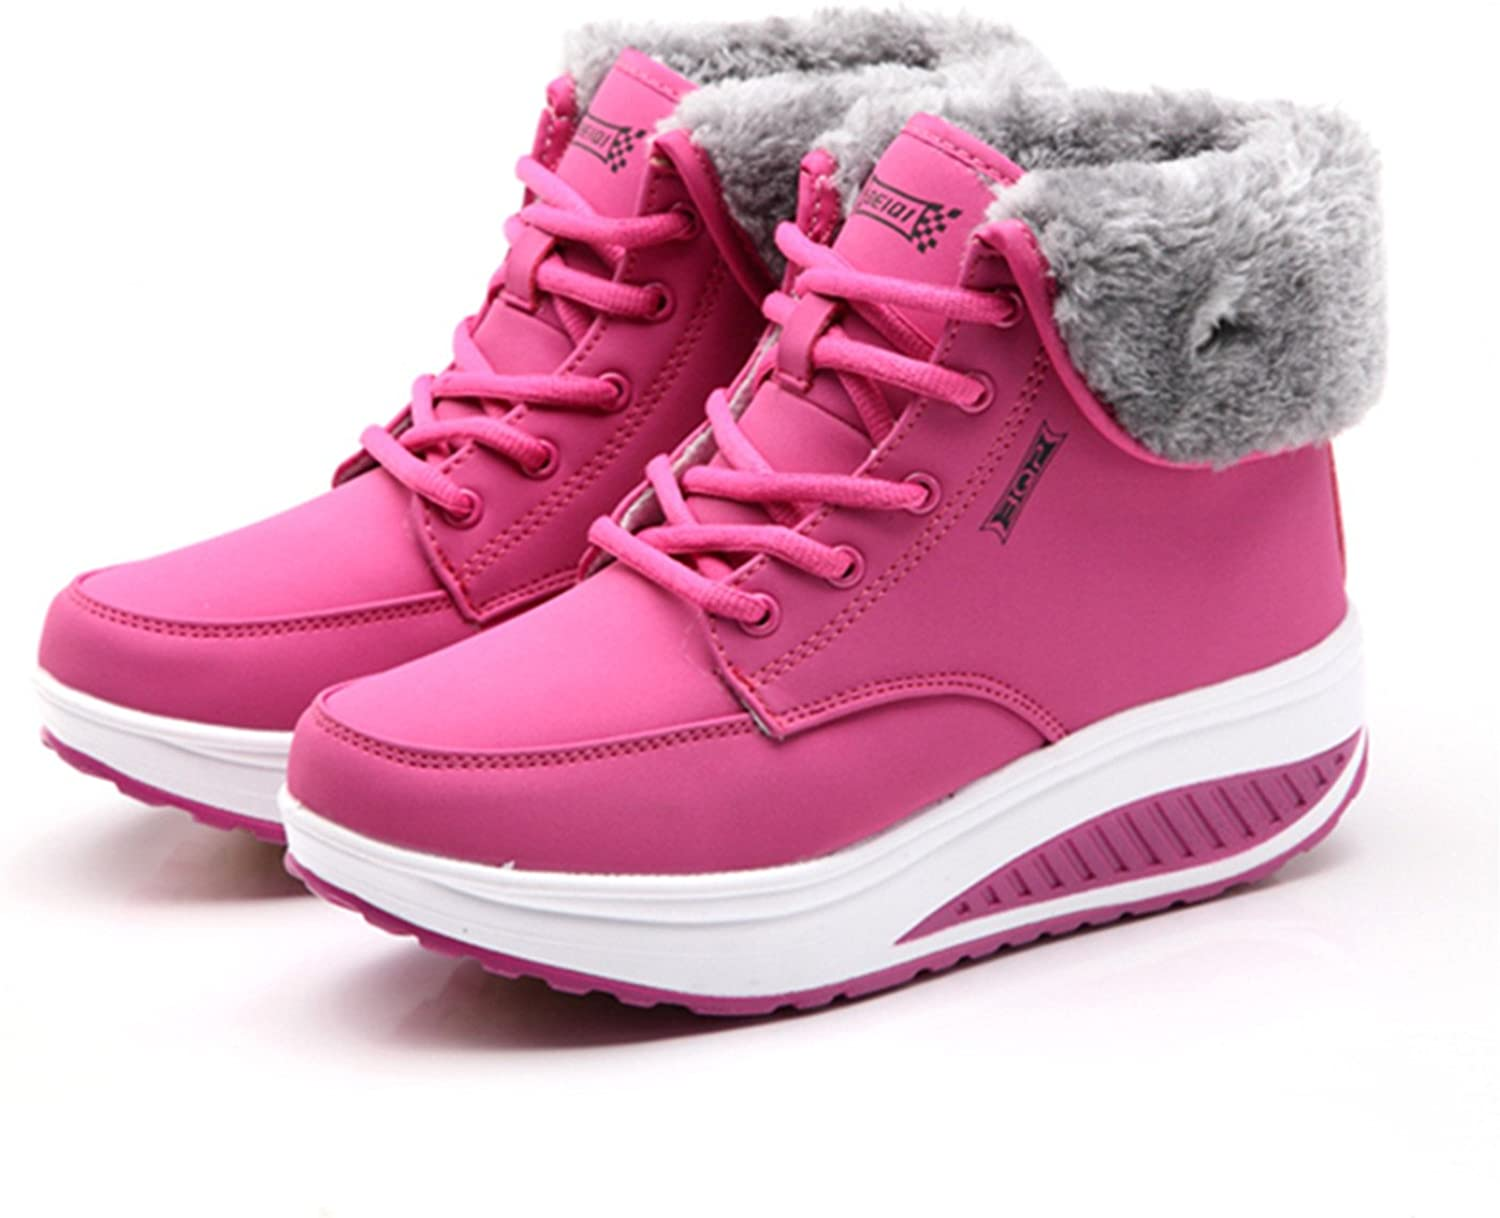 Better Annie Winter Female Plus Velvet Swing shoes Snow Platform Boots Women Thermal Cotton-Padded shoes Flat Ankle Boots